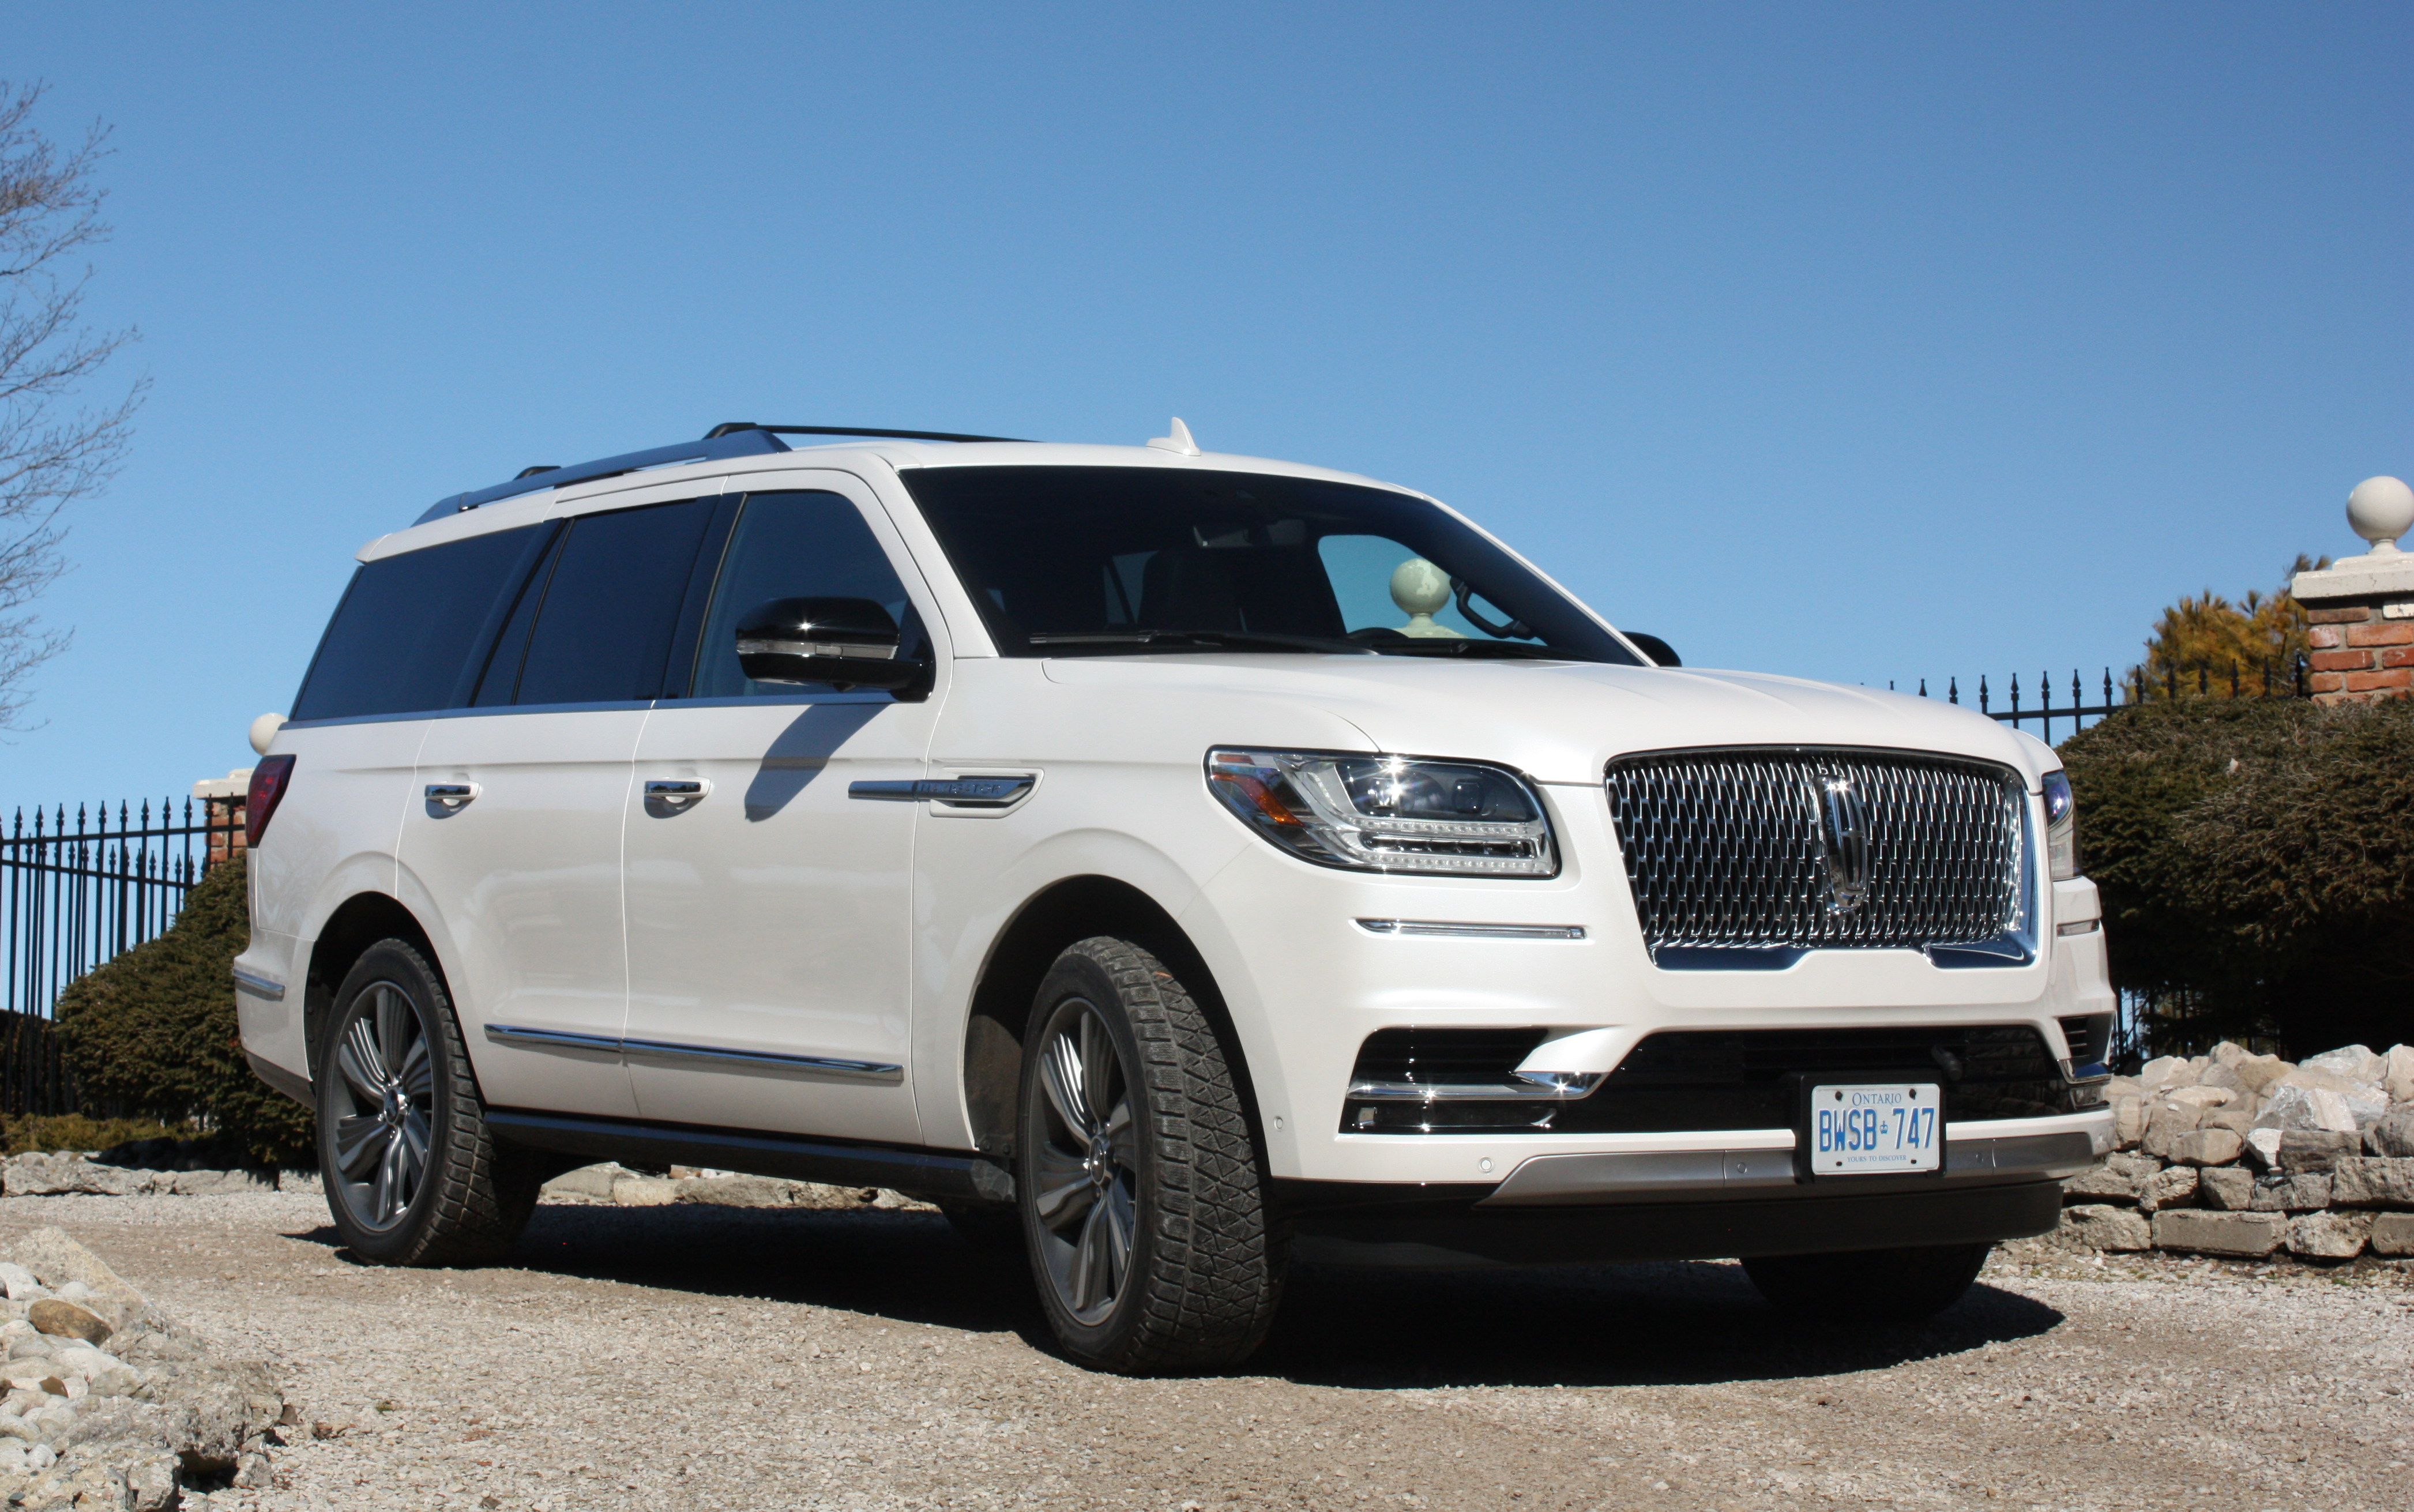 steve suv the navigator lincoln limo s with in style img roll